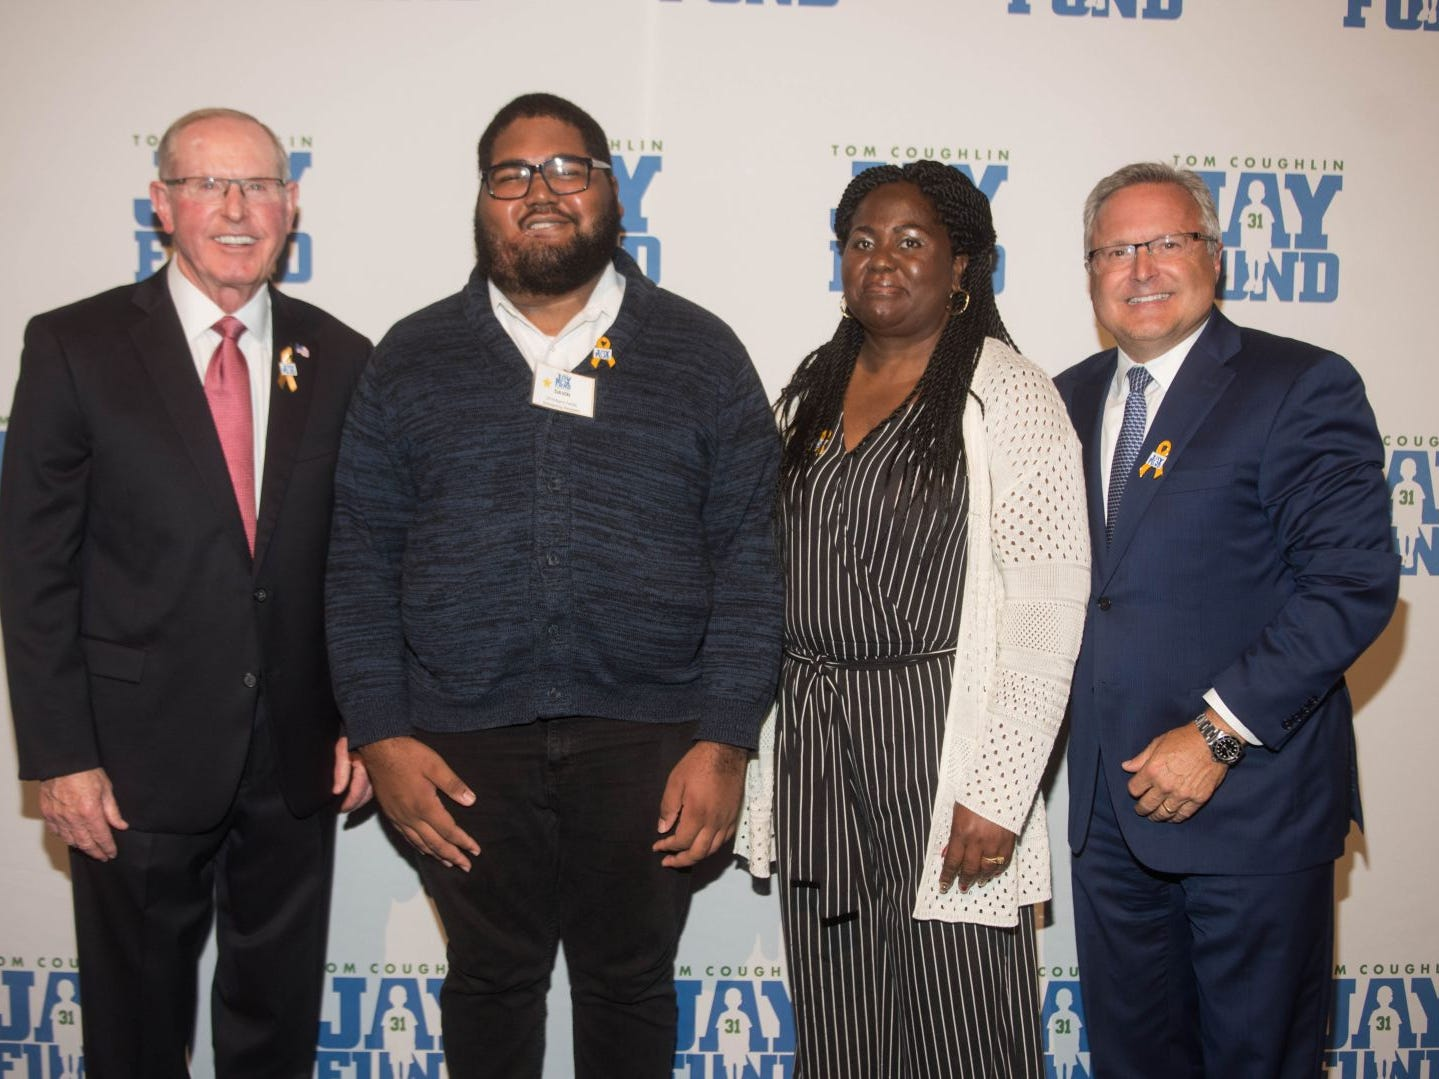 Tom Coughlin, Davin Goulbourne, Gene Scott and Steve Barry. The 14th annual Jay Fund Champions for Children Gala was held at Cipriani 42nd Street. 09/21/2018